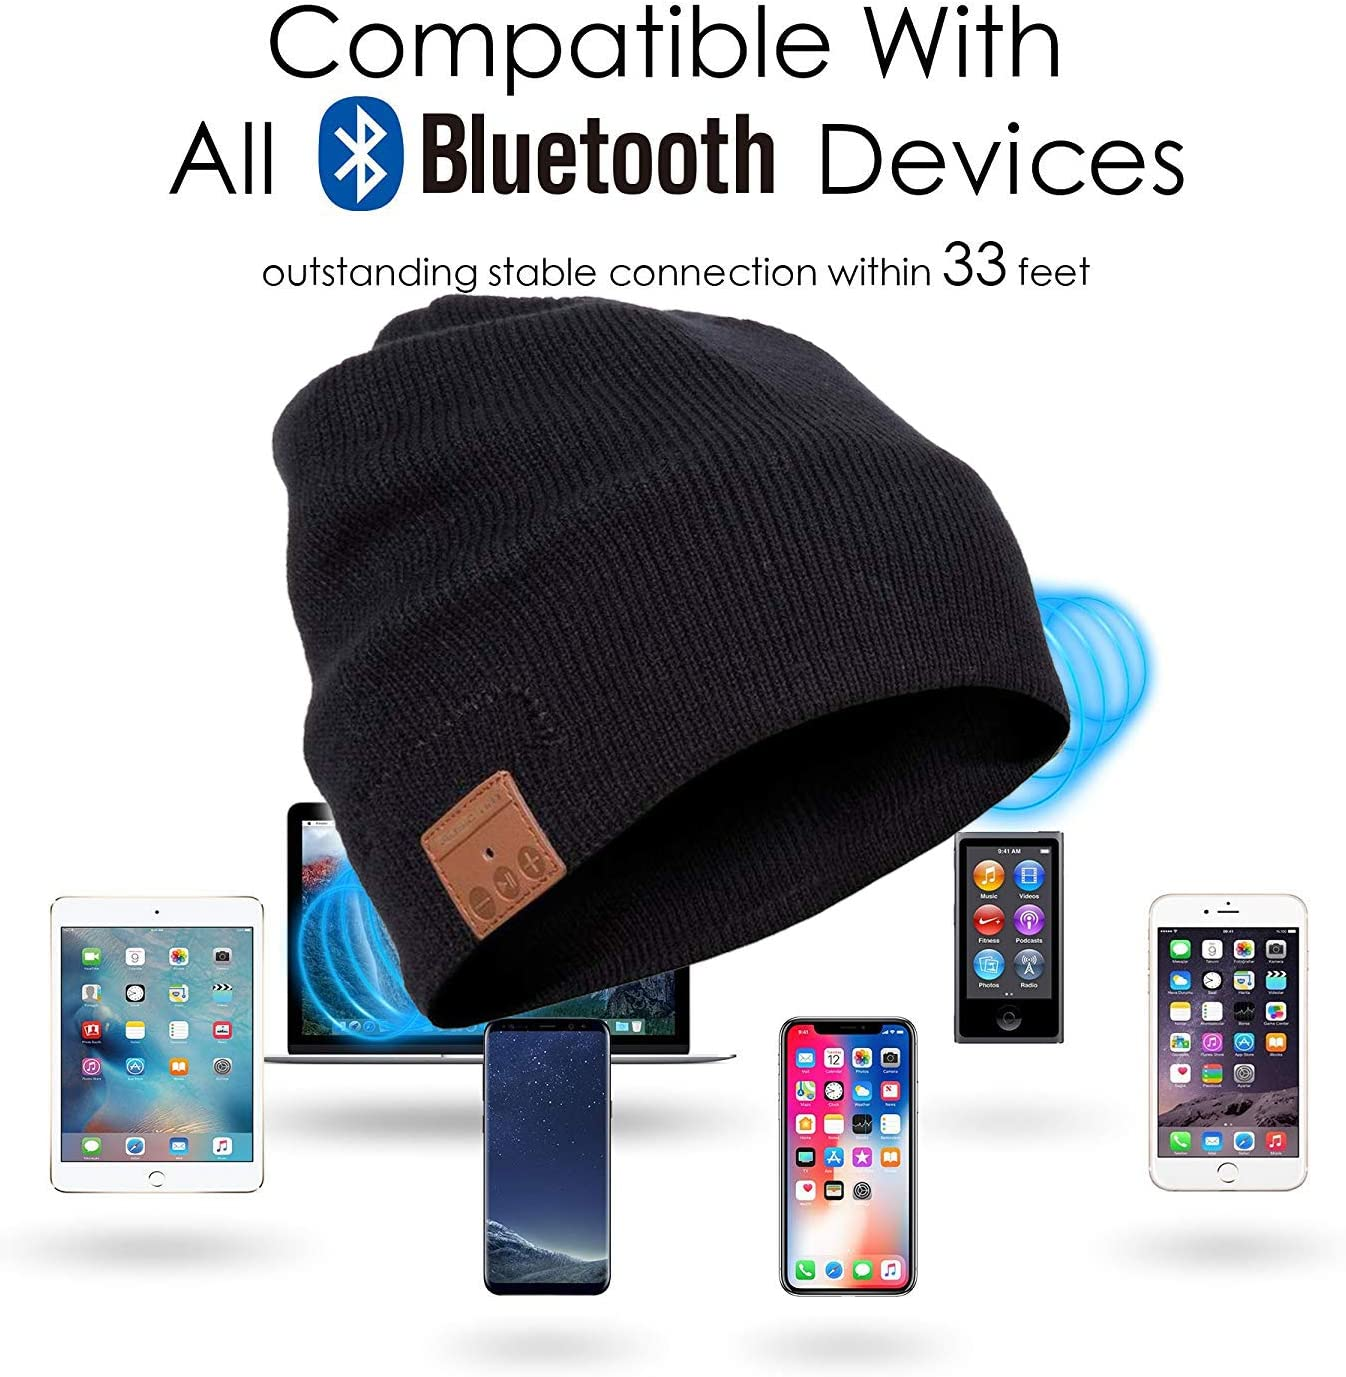 CCHKFEI Bluetooth Beanie Hat Cap with Wireless Bluetooth Headphone Headset Music Audio Hands free Phone Call for Winter Sports Exercise Hat Gloves Gift Package